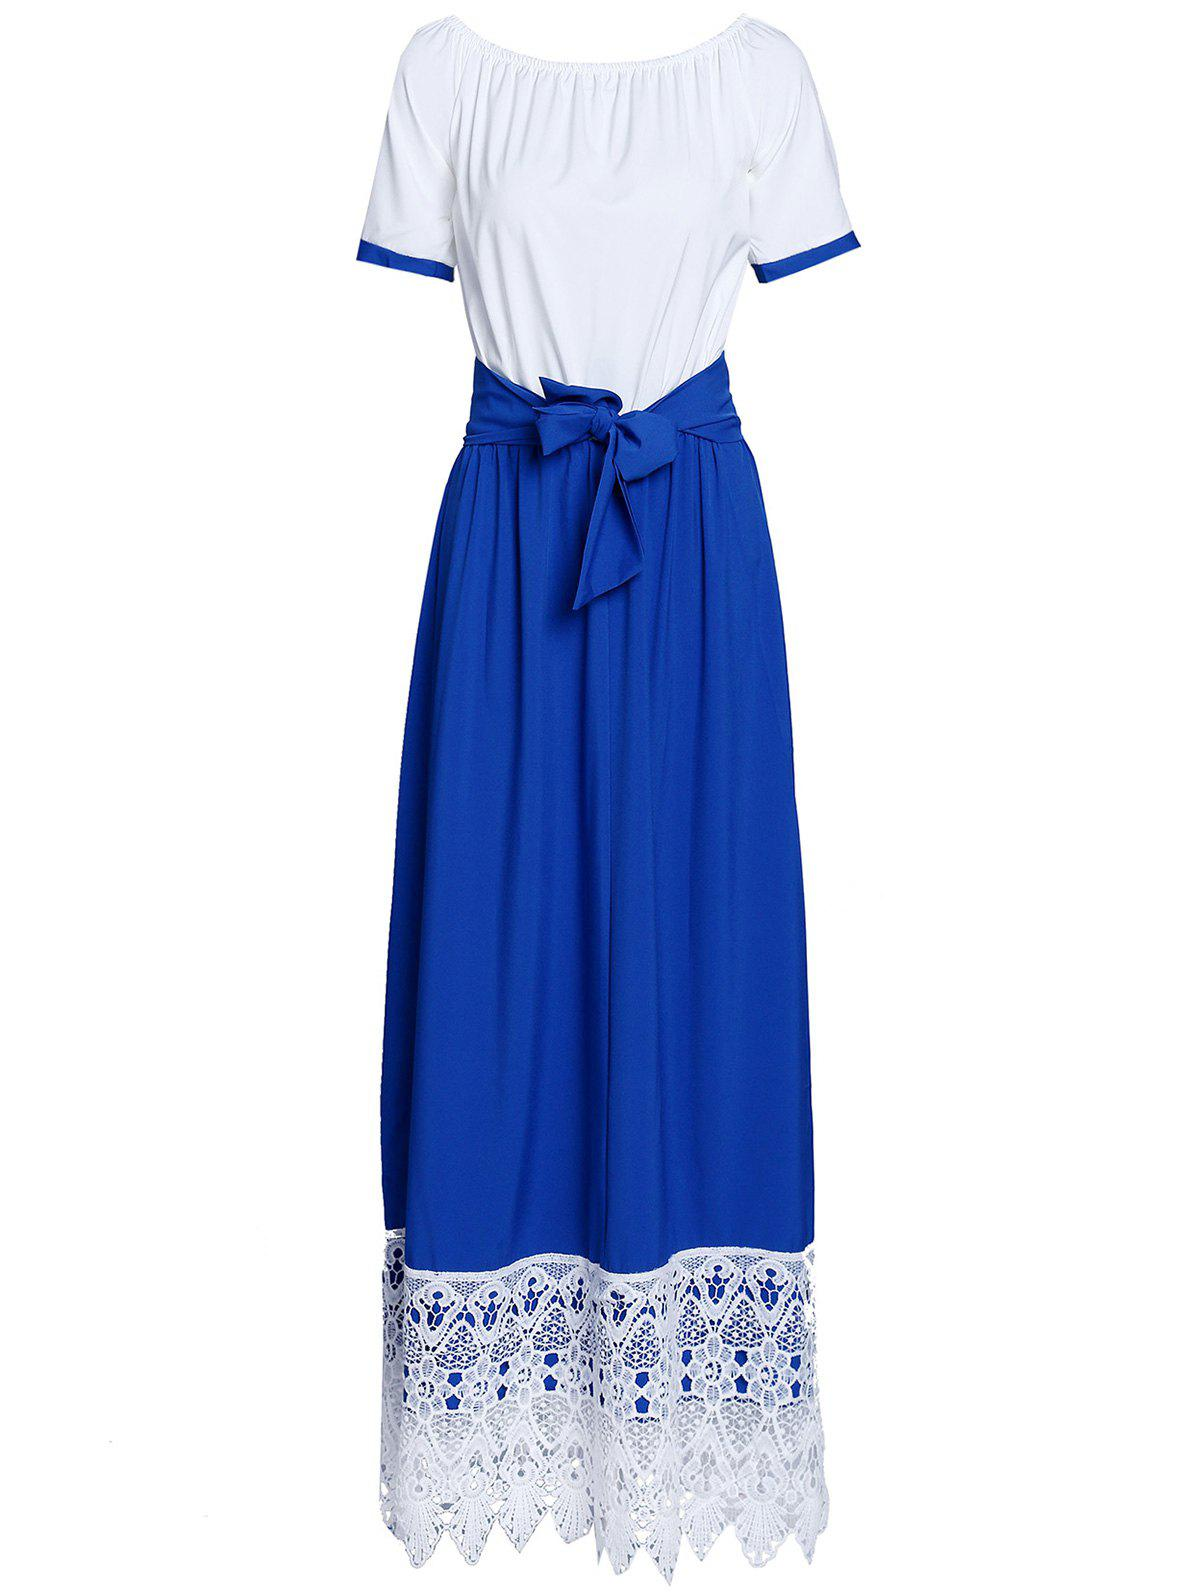 Endearing Color Block Ruffled Sleeve Lace Hem Loose Maxi Dress For Women